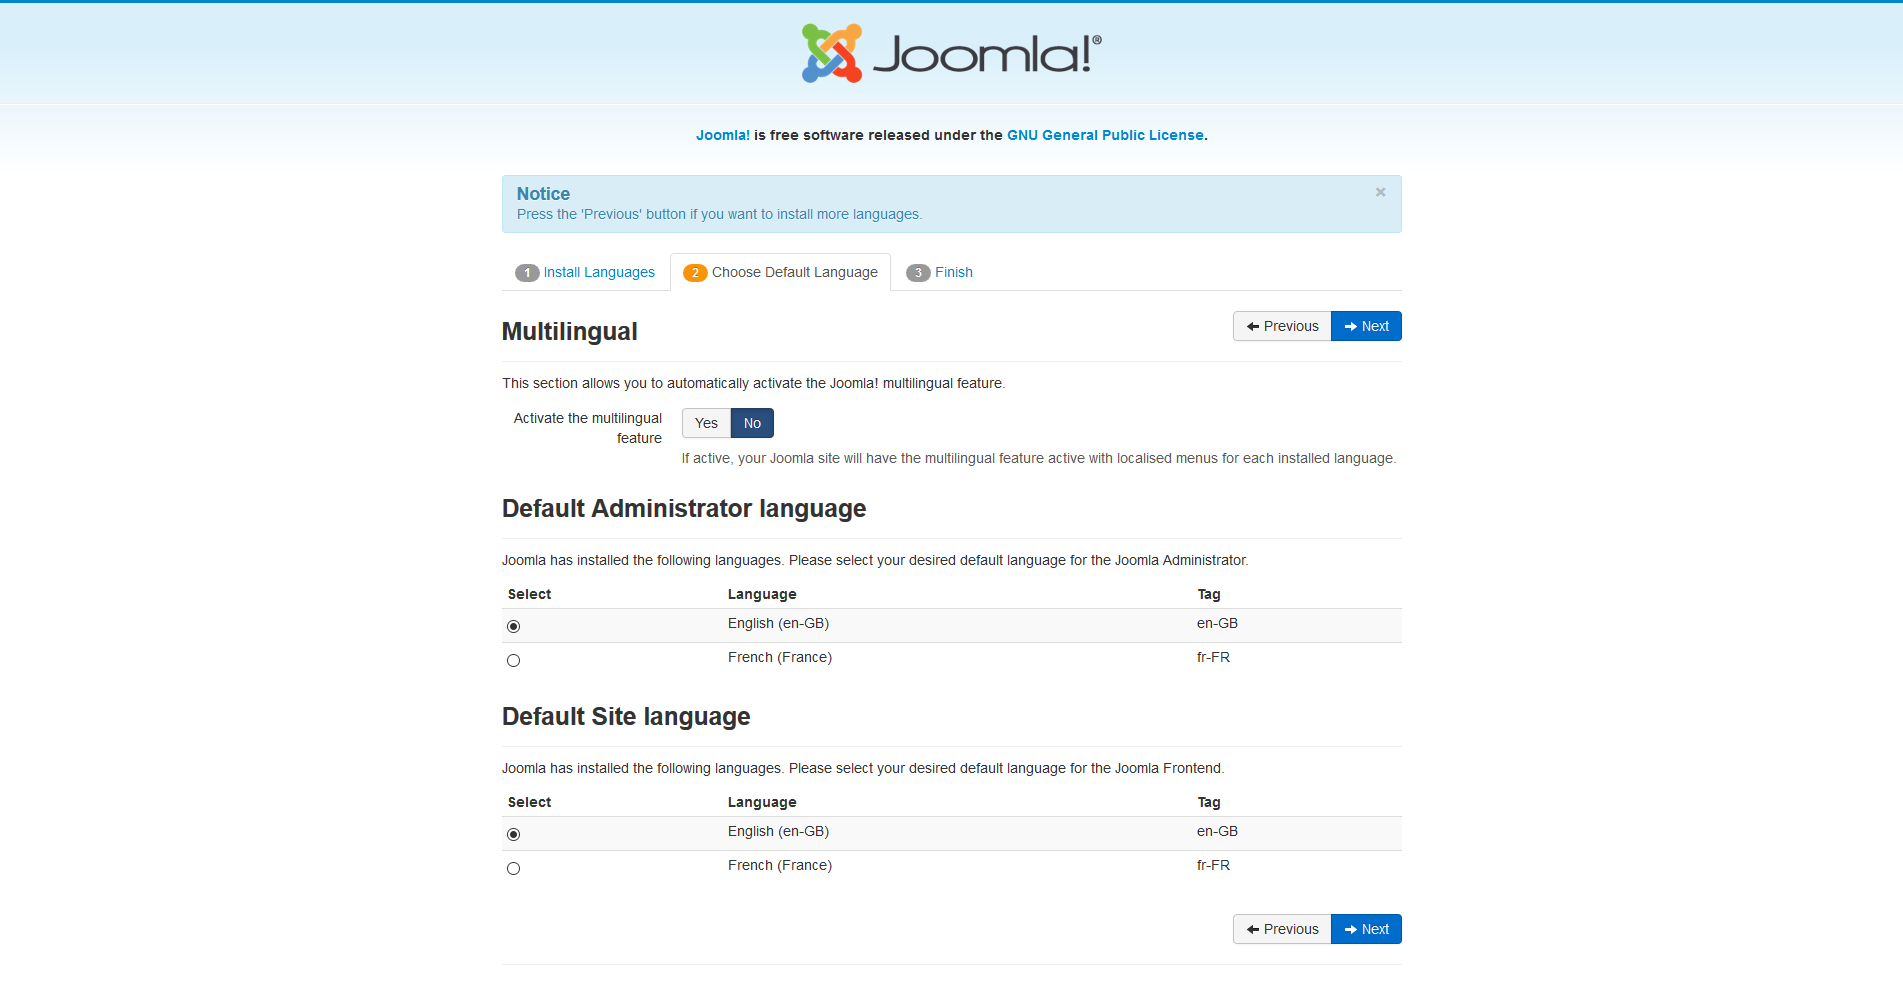 j3 x installing joomla joomla documentation